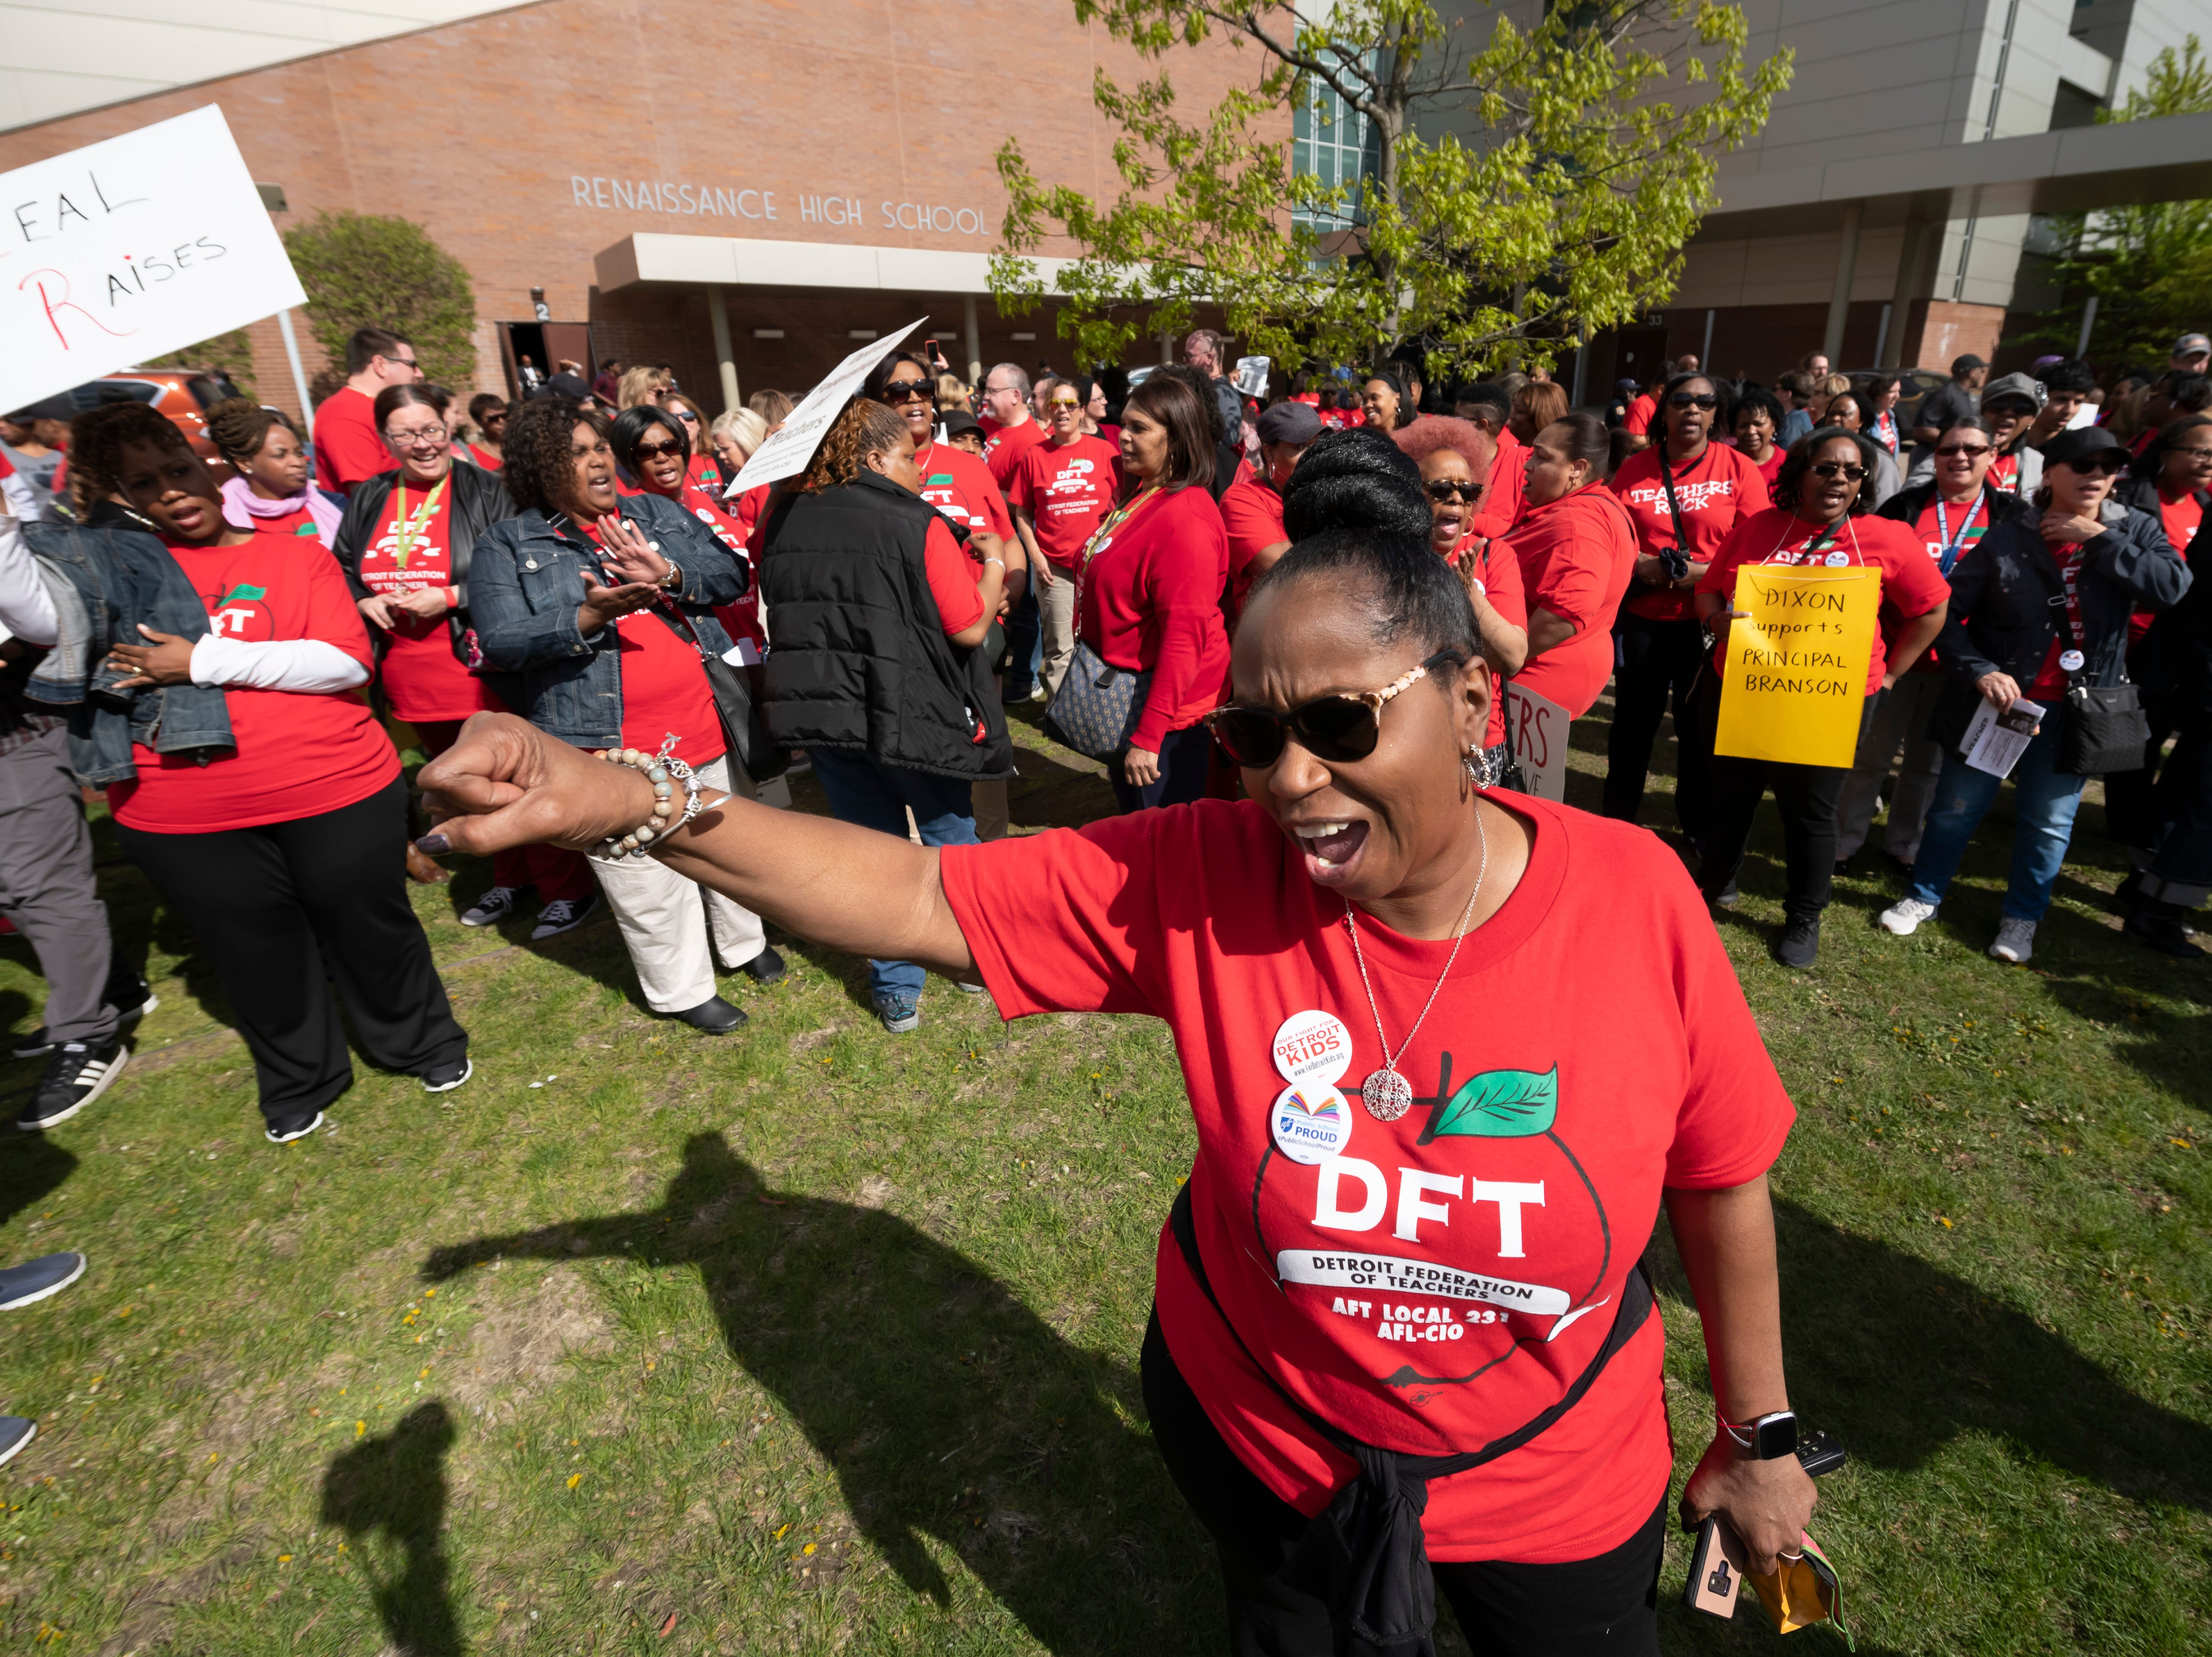 Welia Dawson, a teacher at Paul Robeson Malcolm X Academy, joins with hundreds of Detroit teachers protesting before a school board meeting at Renaissance High school, in Detroit, May 14, 2019. The teachers are upset over a new calendar, teacher pay, building conditions and class sizes.   (David Guralnick / The Detroit News)